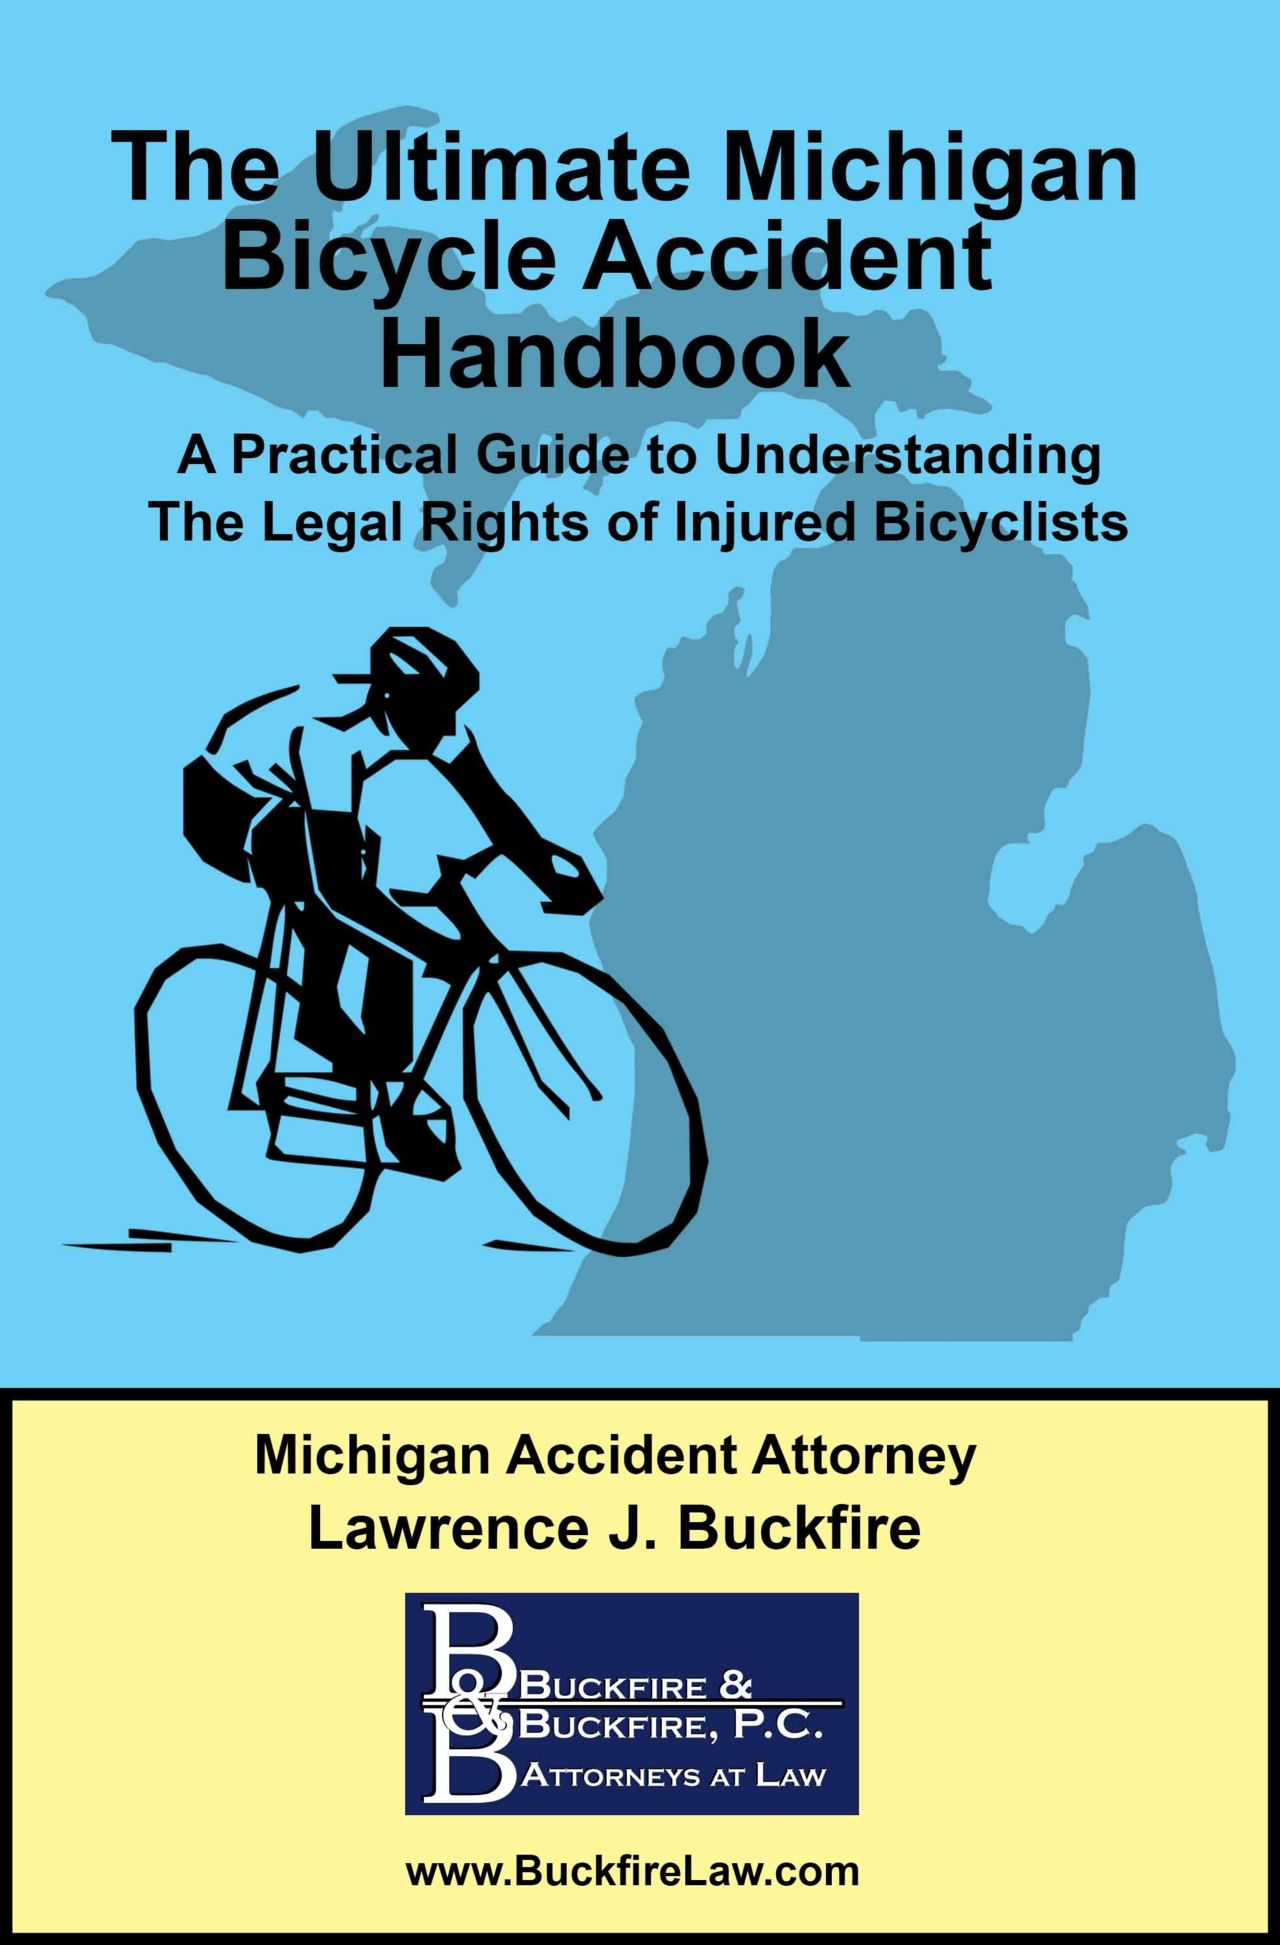 Michigan Bicycle Accident Handbook